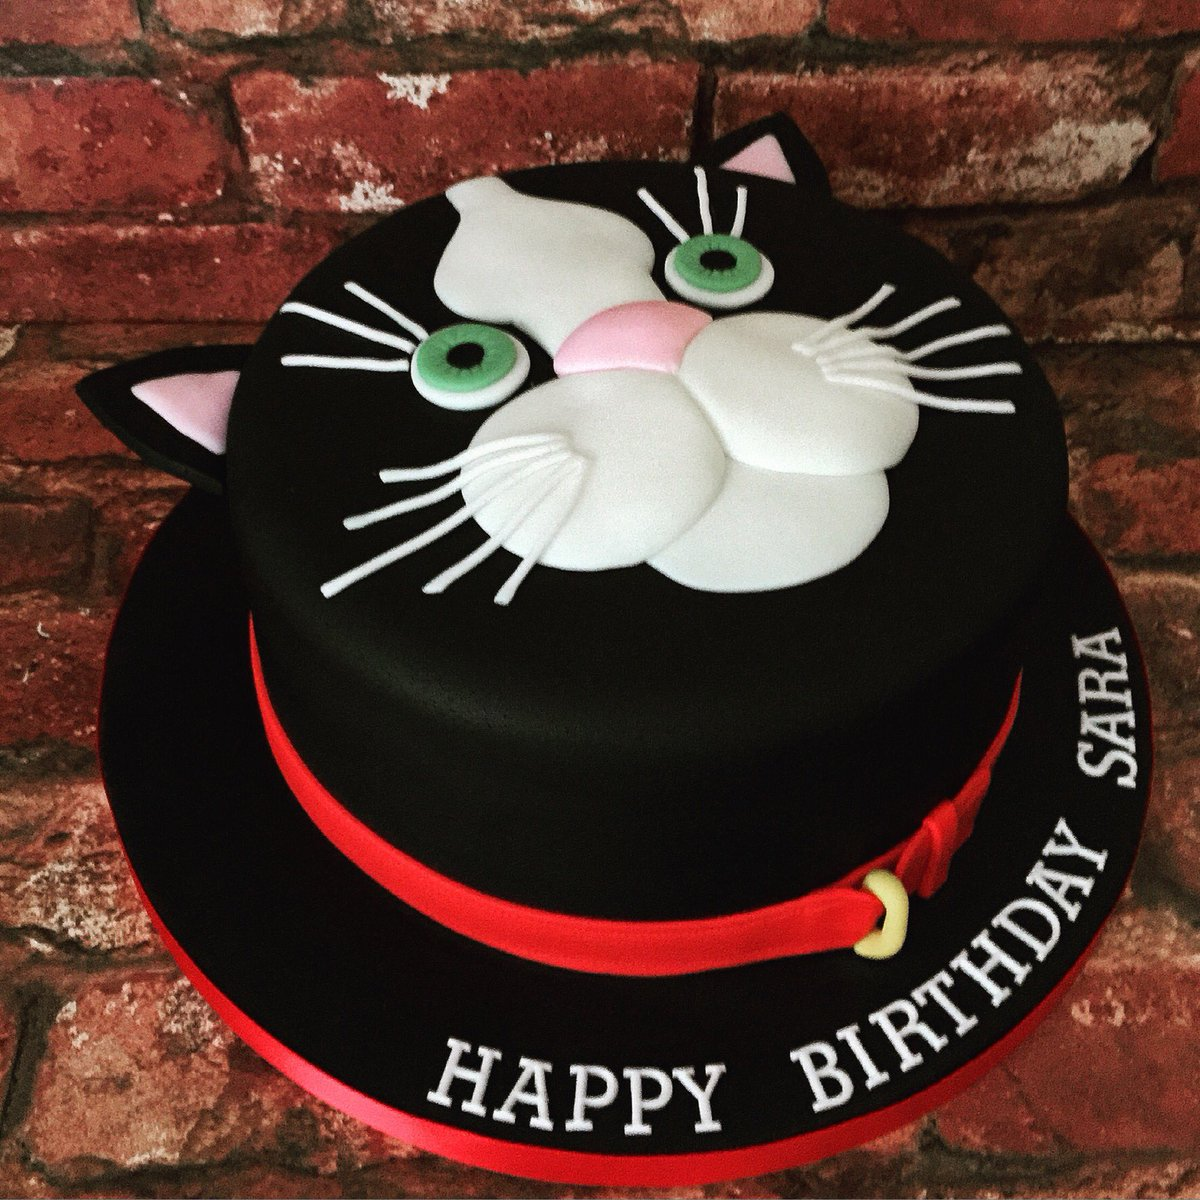 Marias Cake Boutique Auf Twitter Pussy Cat Themed Birthday Mariascakboutique Ithoughtisawapuddytat Chocolate Sponge Birthdaycake